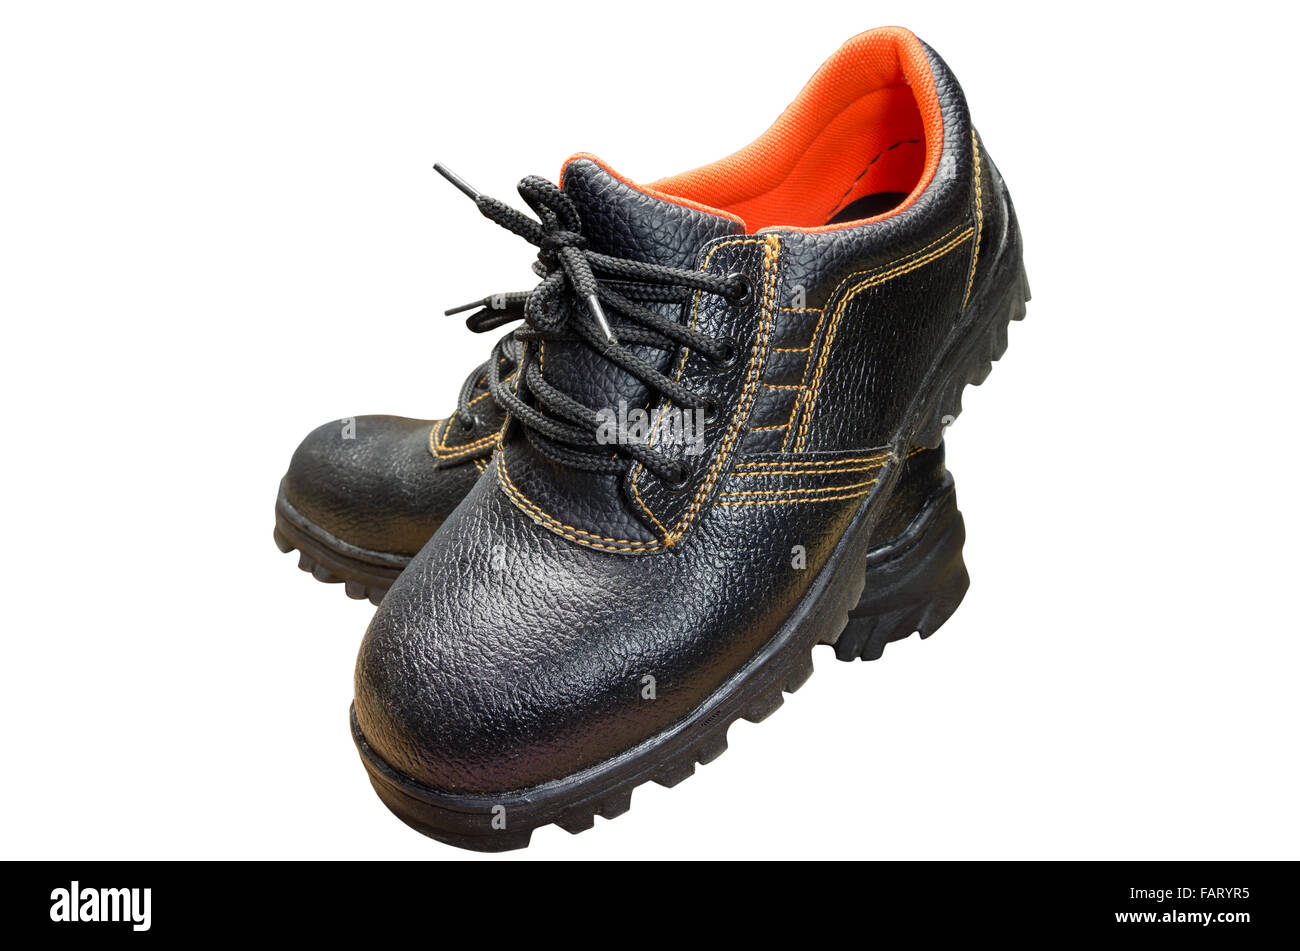 Black Steel Toe Safety of steel cap work boots on white blackground. Stock Photo